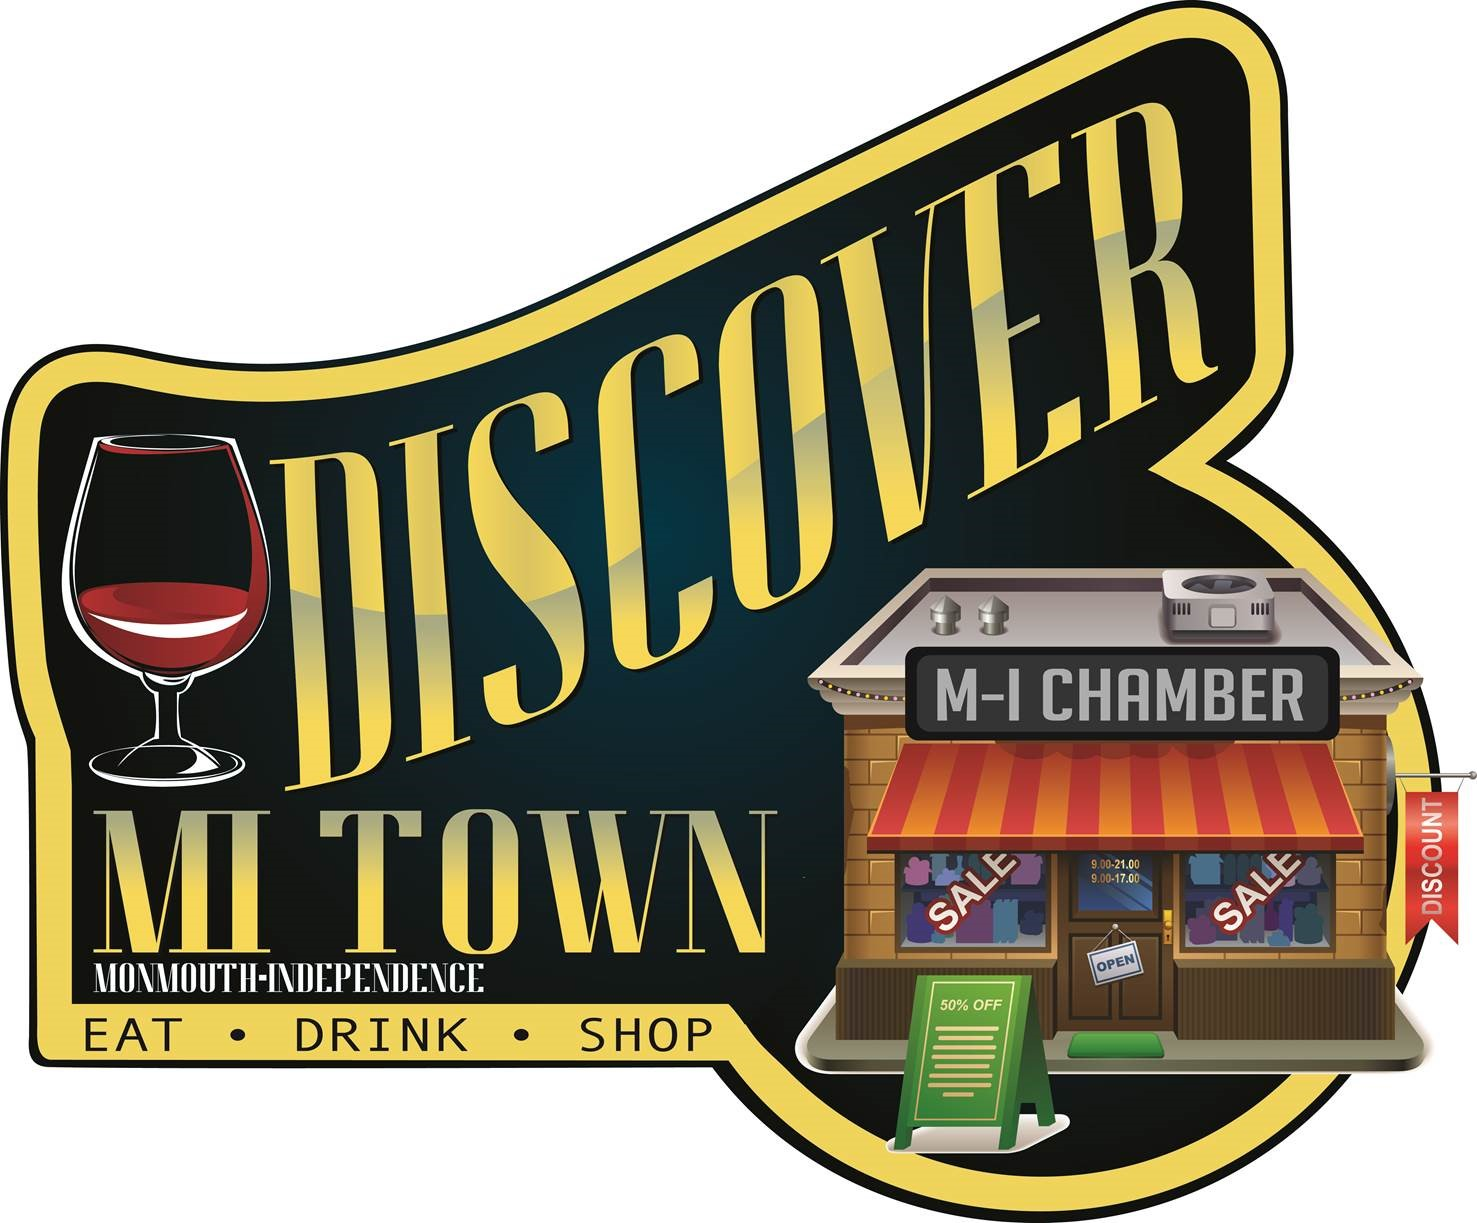 Explore Our Community: Discover MI Town, Saturday May 20th